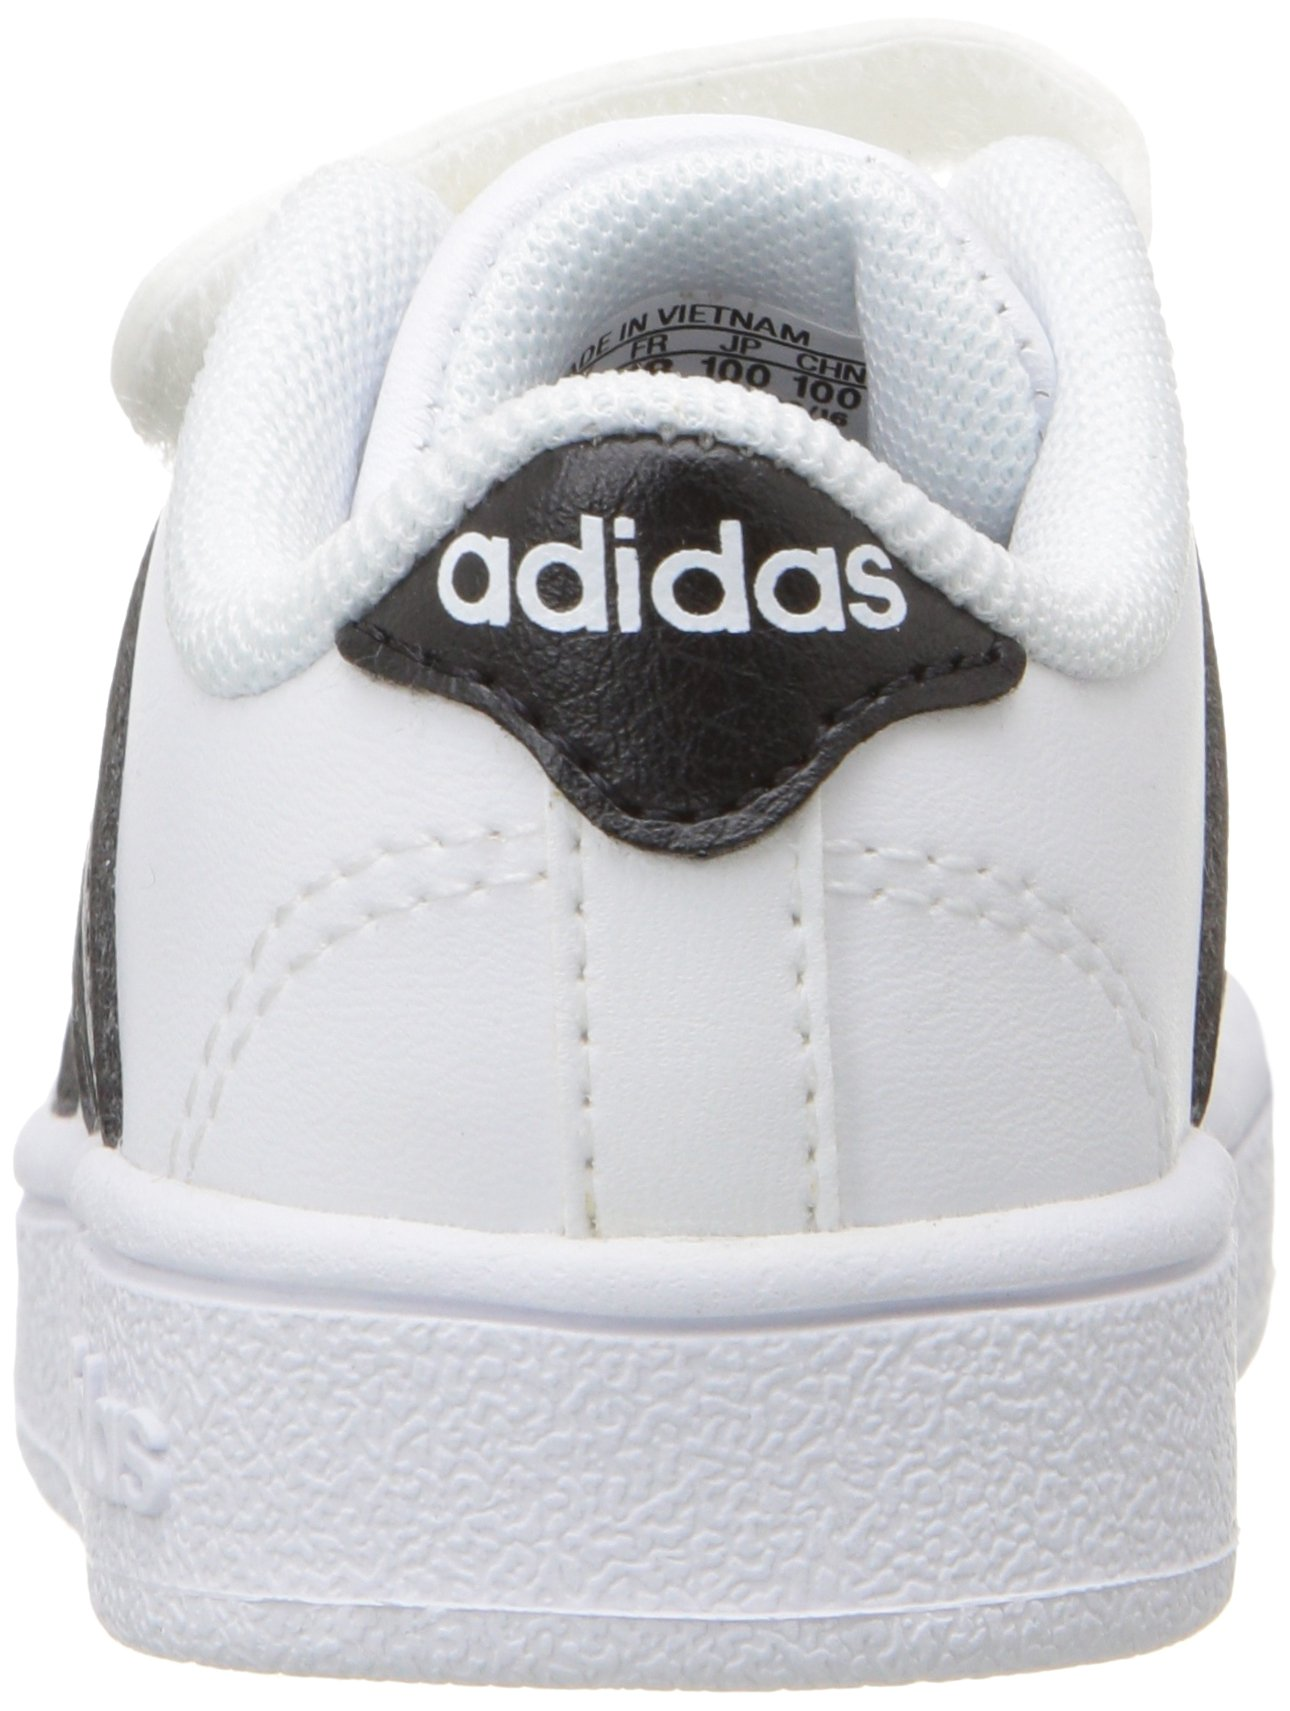 adidas Performance Baby Baseline Sneaker, White/Black/White, 6.5K M US Toddler by adidas (Image #2)